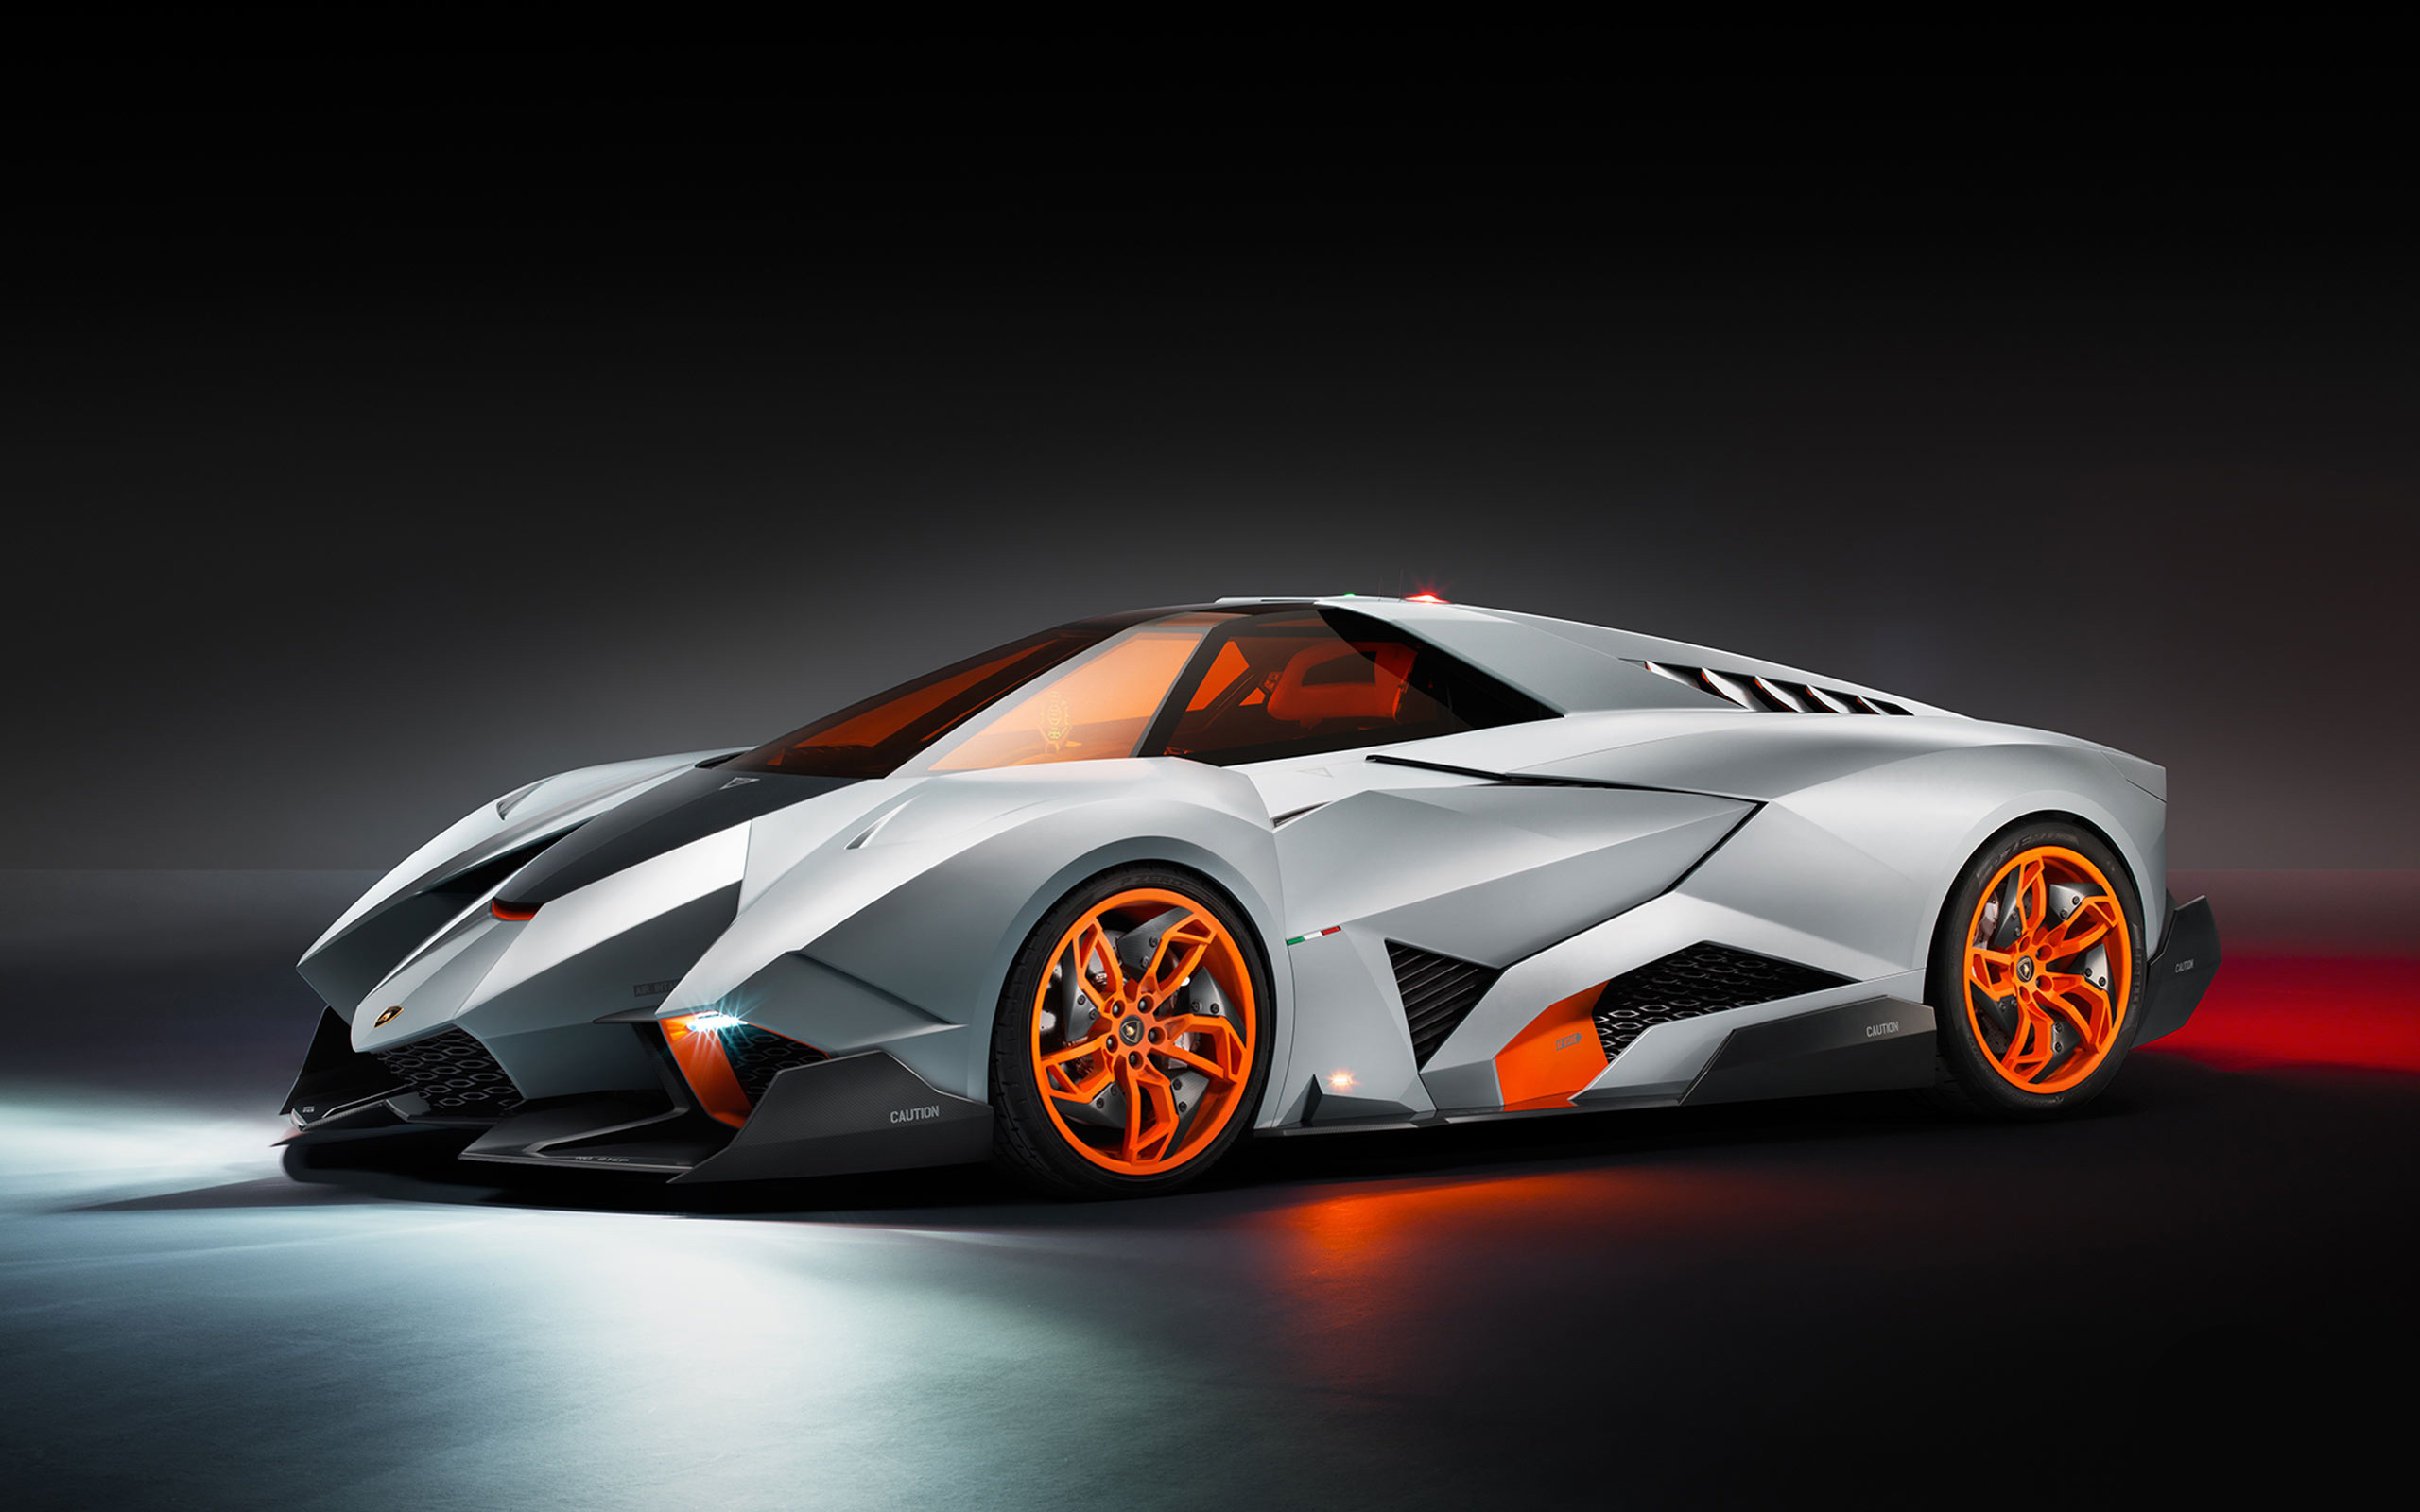 lamborghini egoista concept wallpaper | hd car wallpapers | id #3415